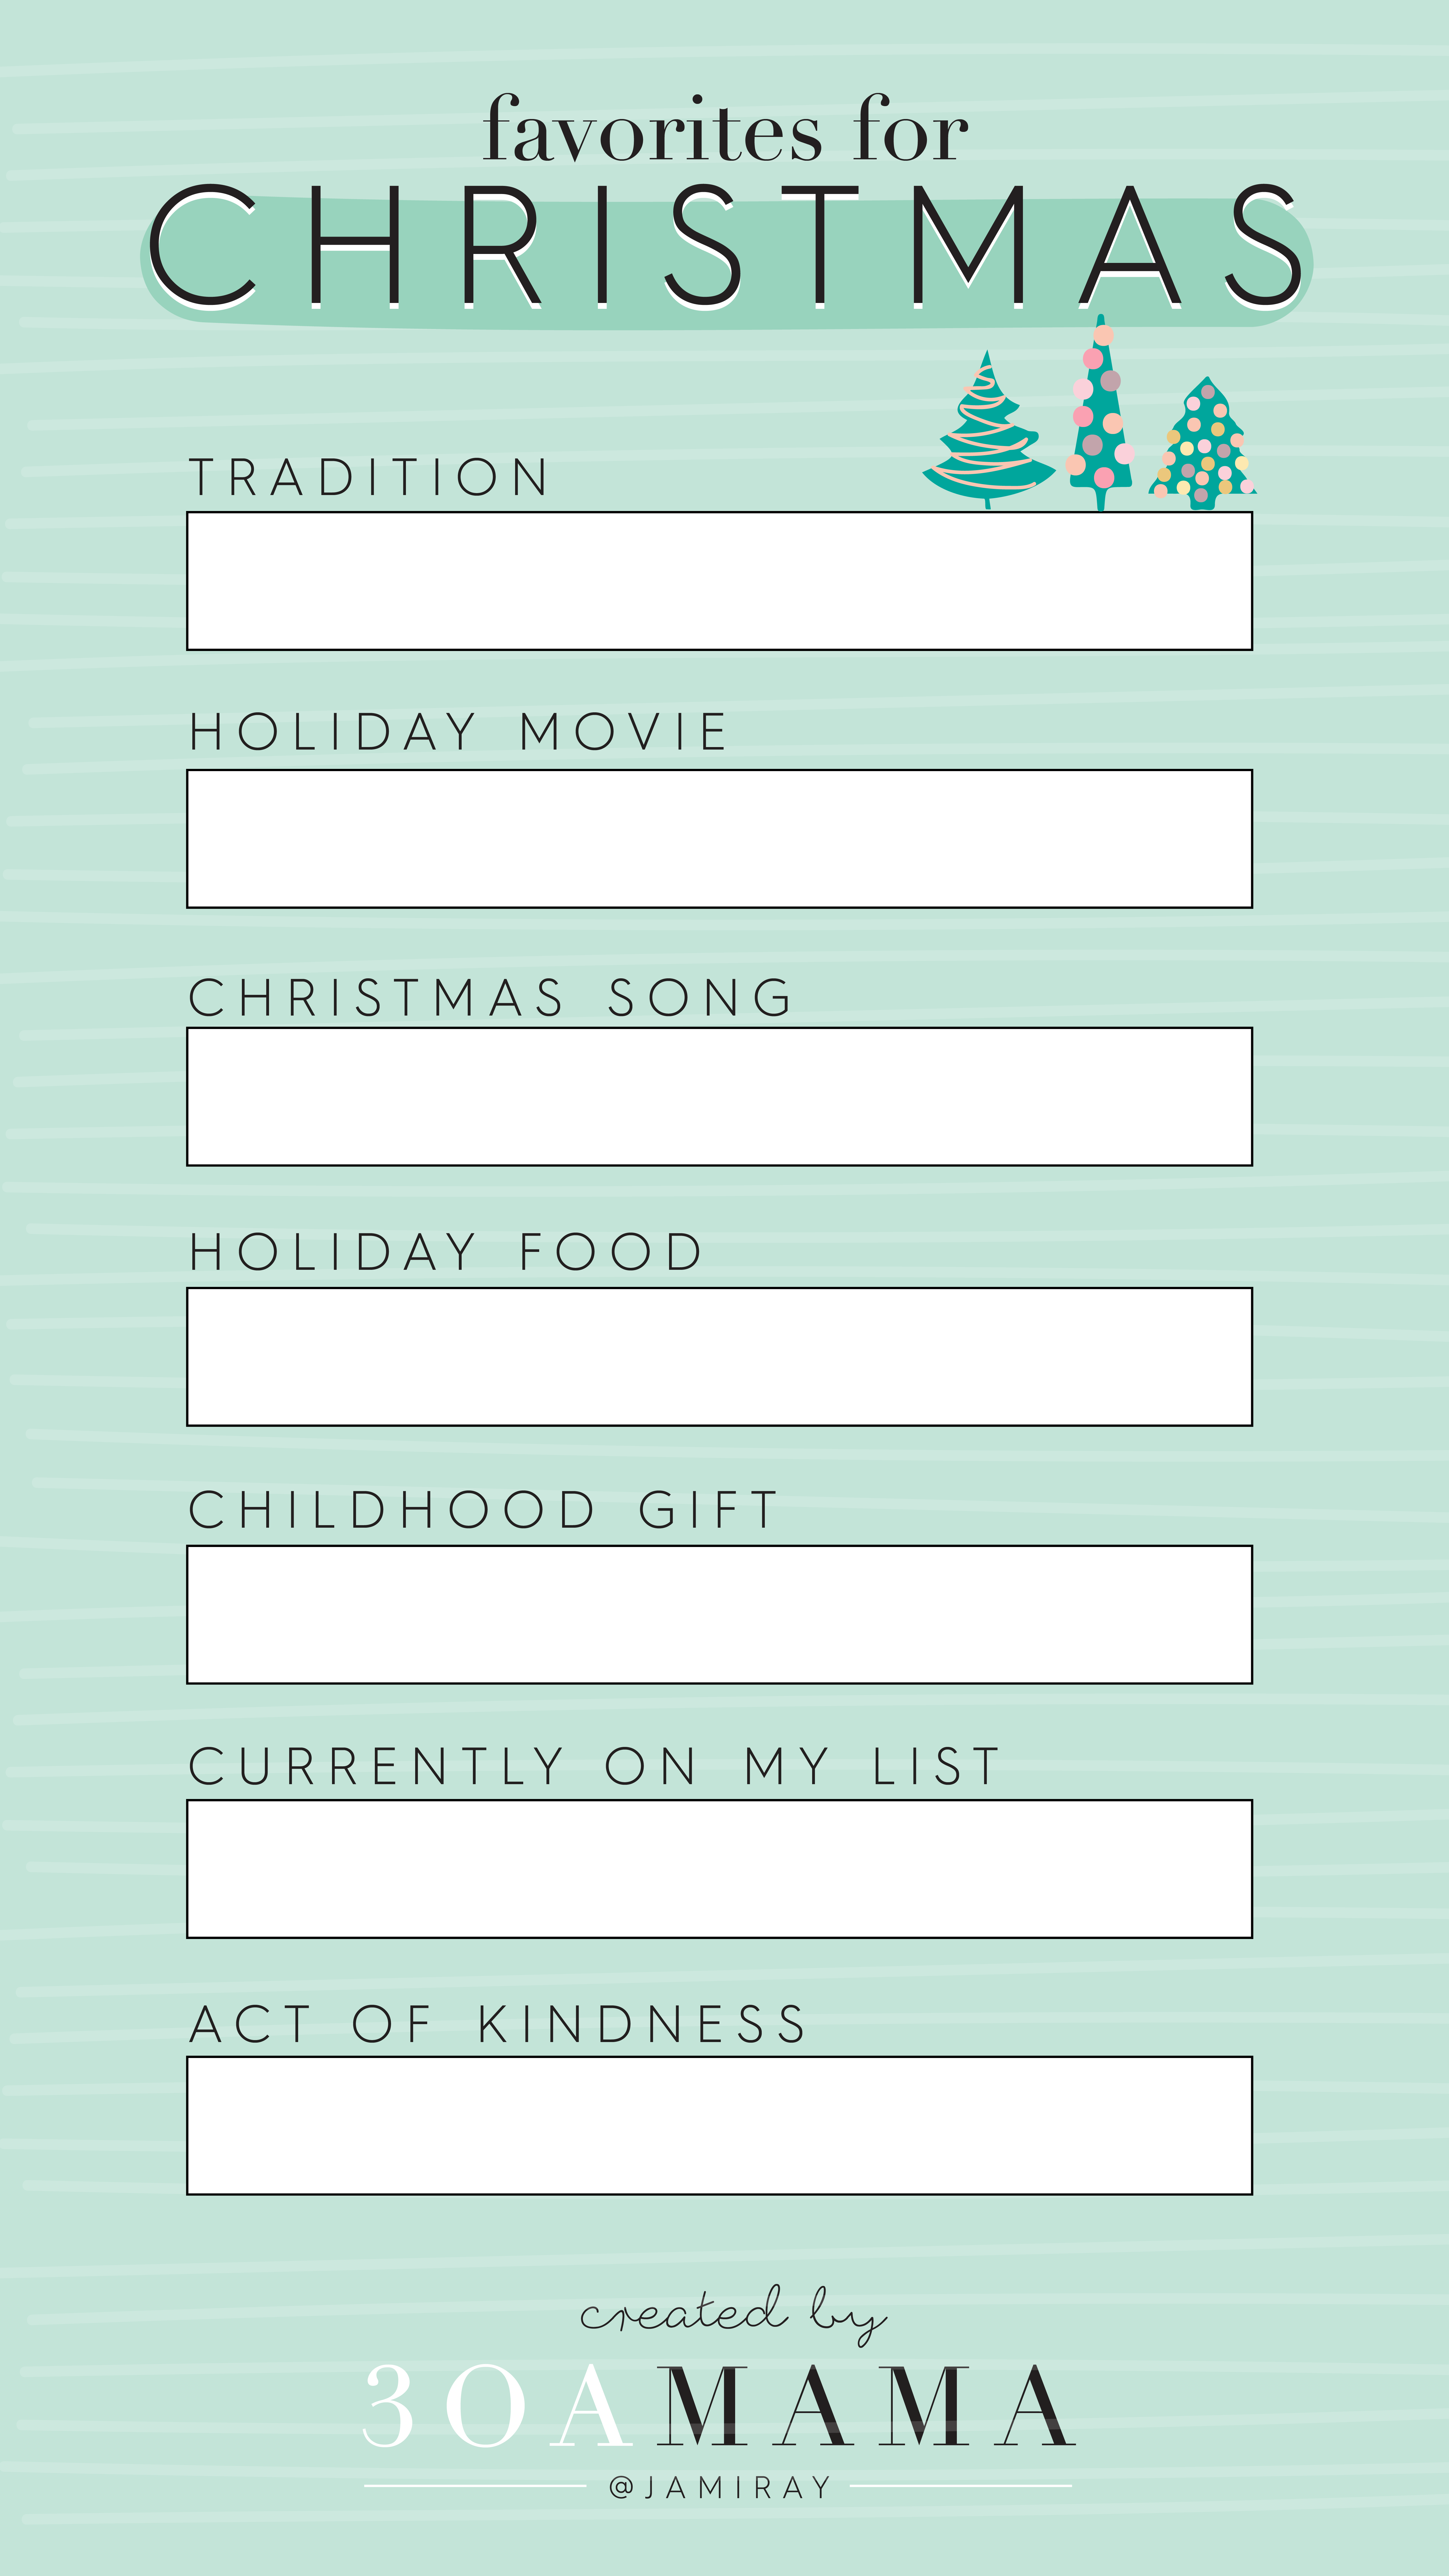 Insta Story Templates Christmas Favorites